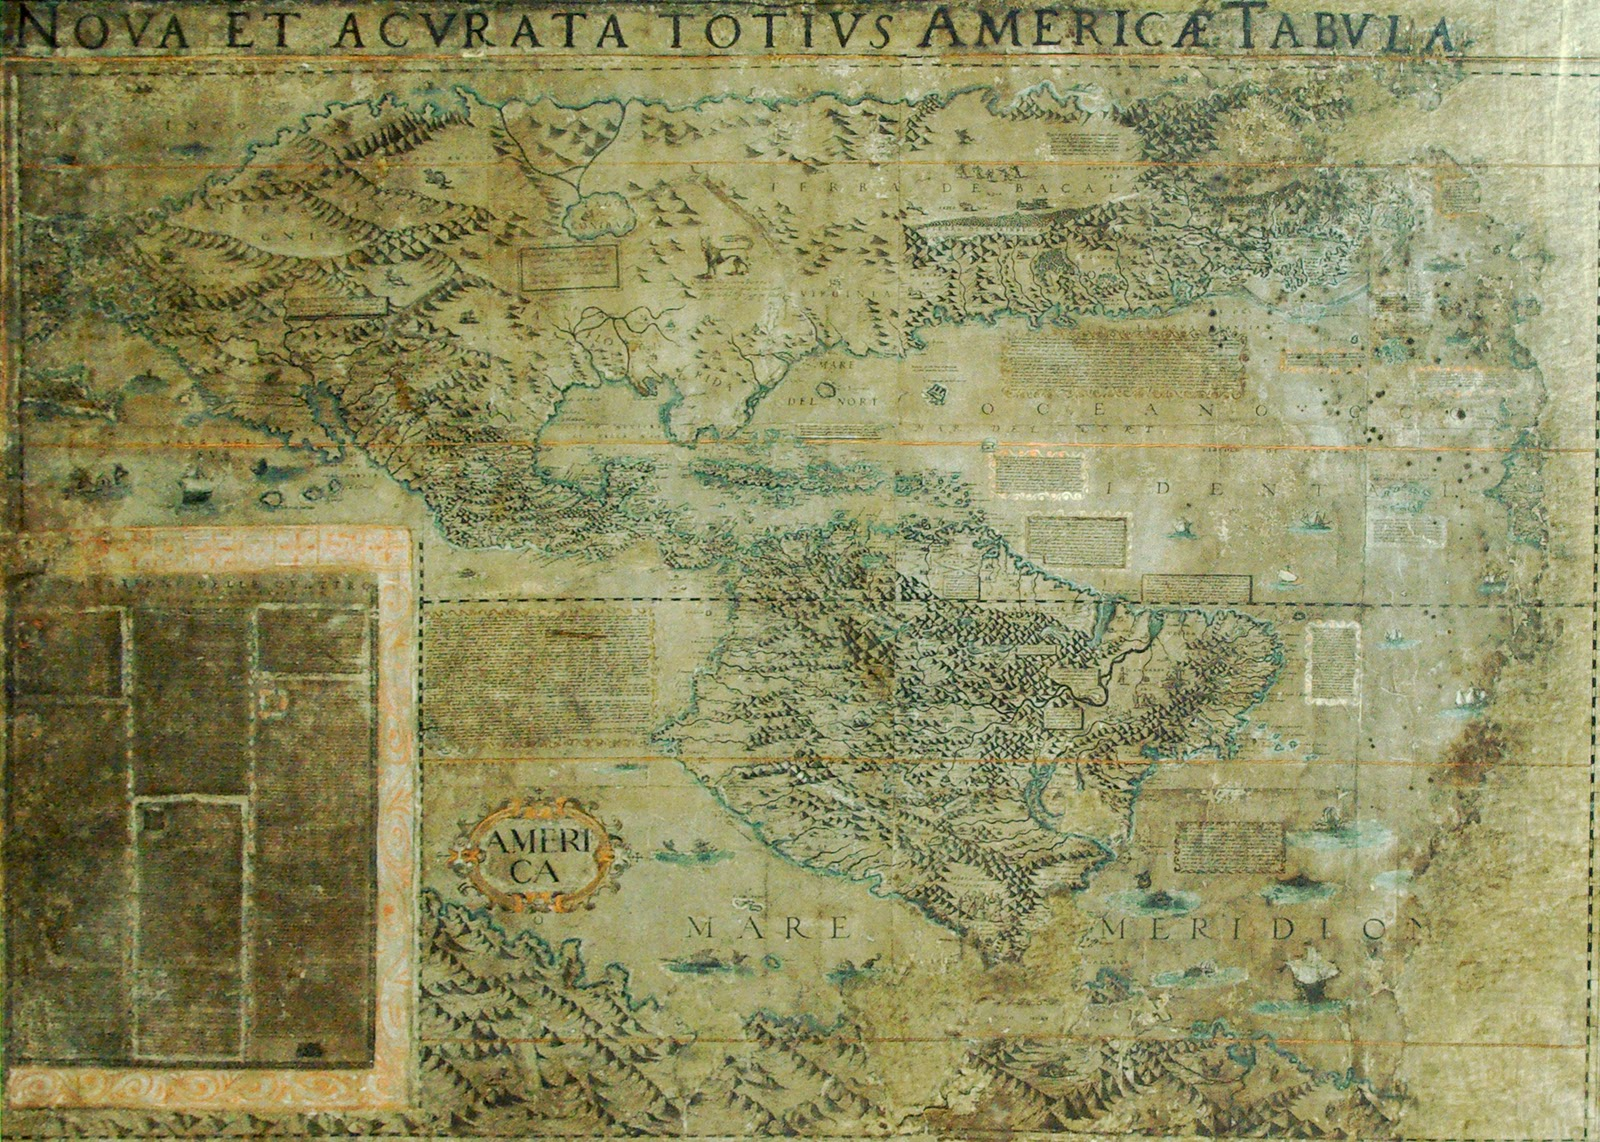 Graham arader maps of the day three large wall maps representing the most important wall maps of continents in existence produced by the most celebrated italian mapmaker gumiabroncs Image collections